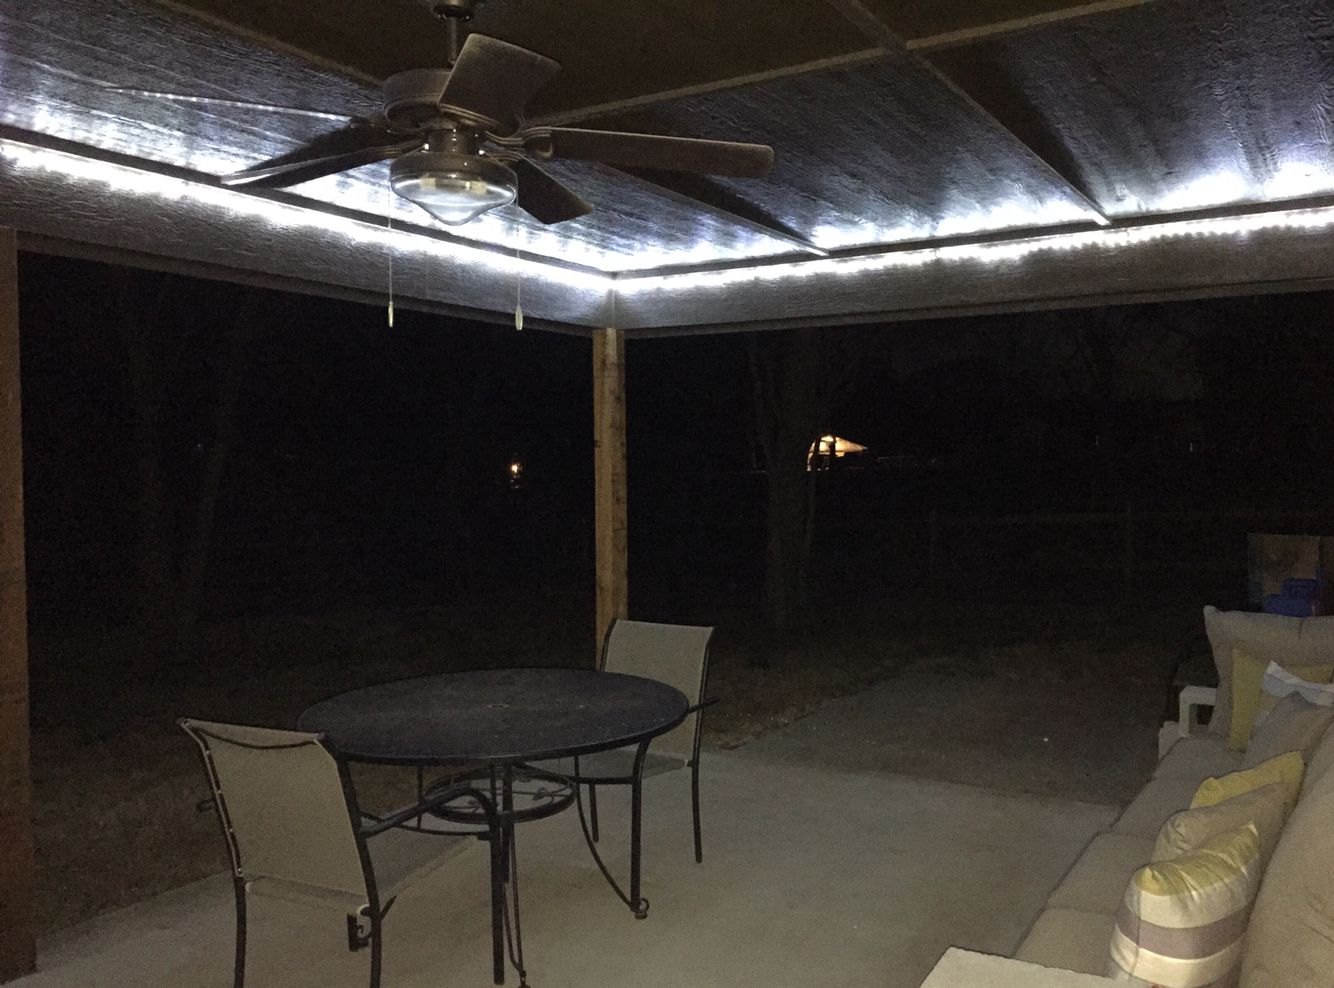 Led Rope Lights Lowes Custom Led Rope Lights On Inside Corner Of The Patiosince The Plastic 2018